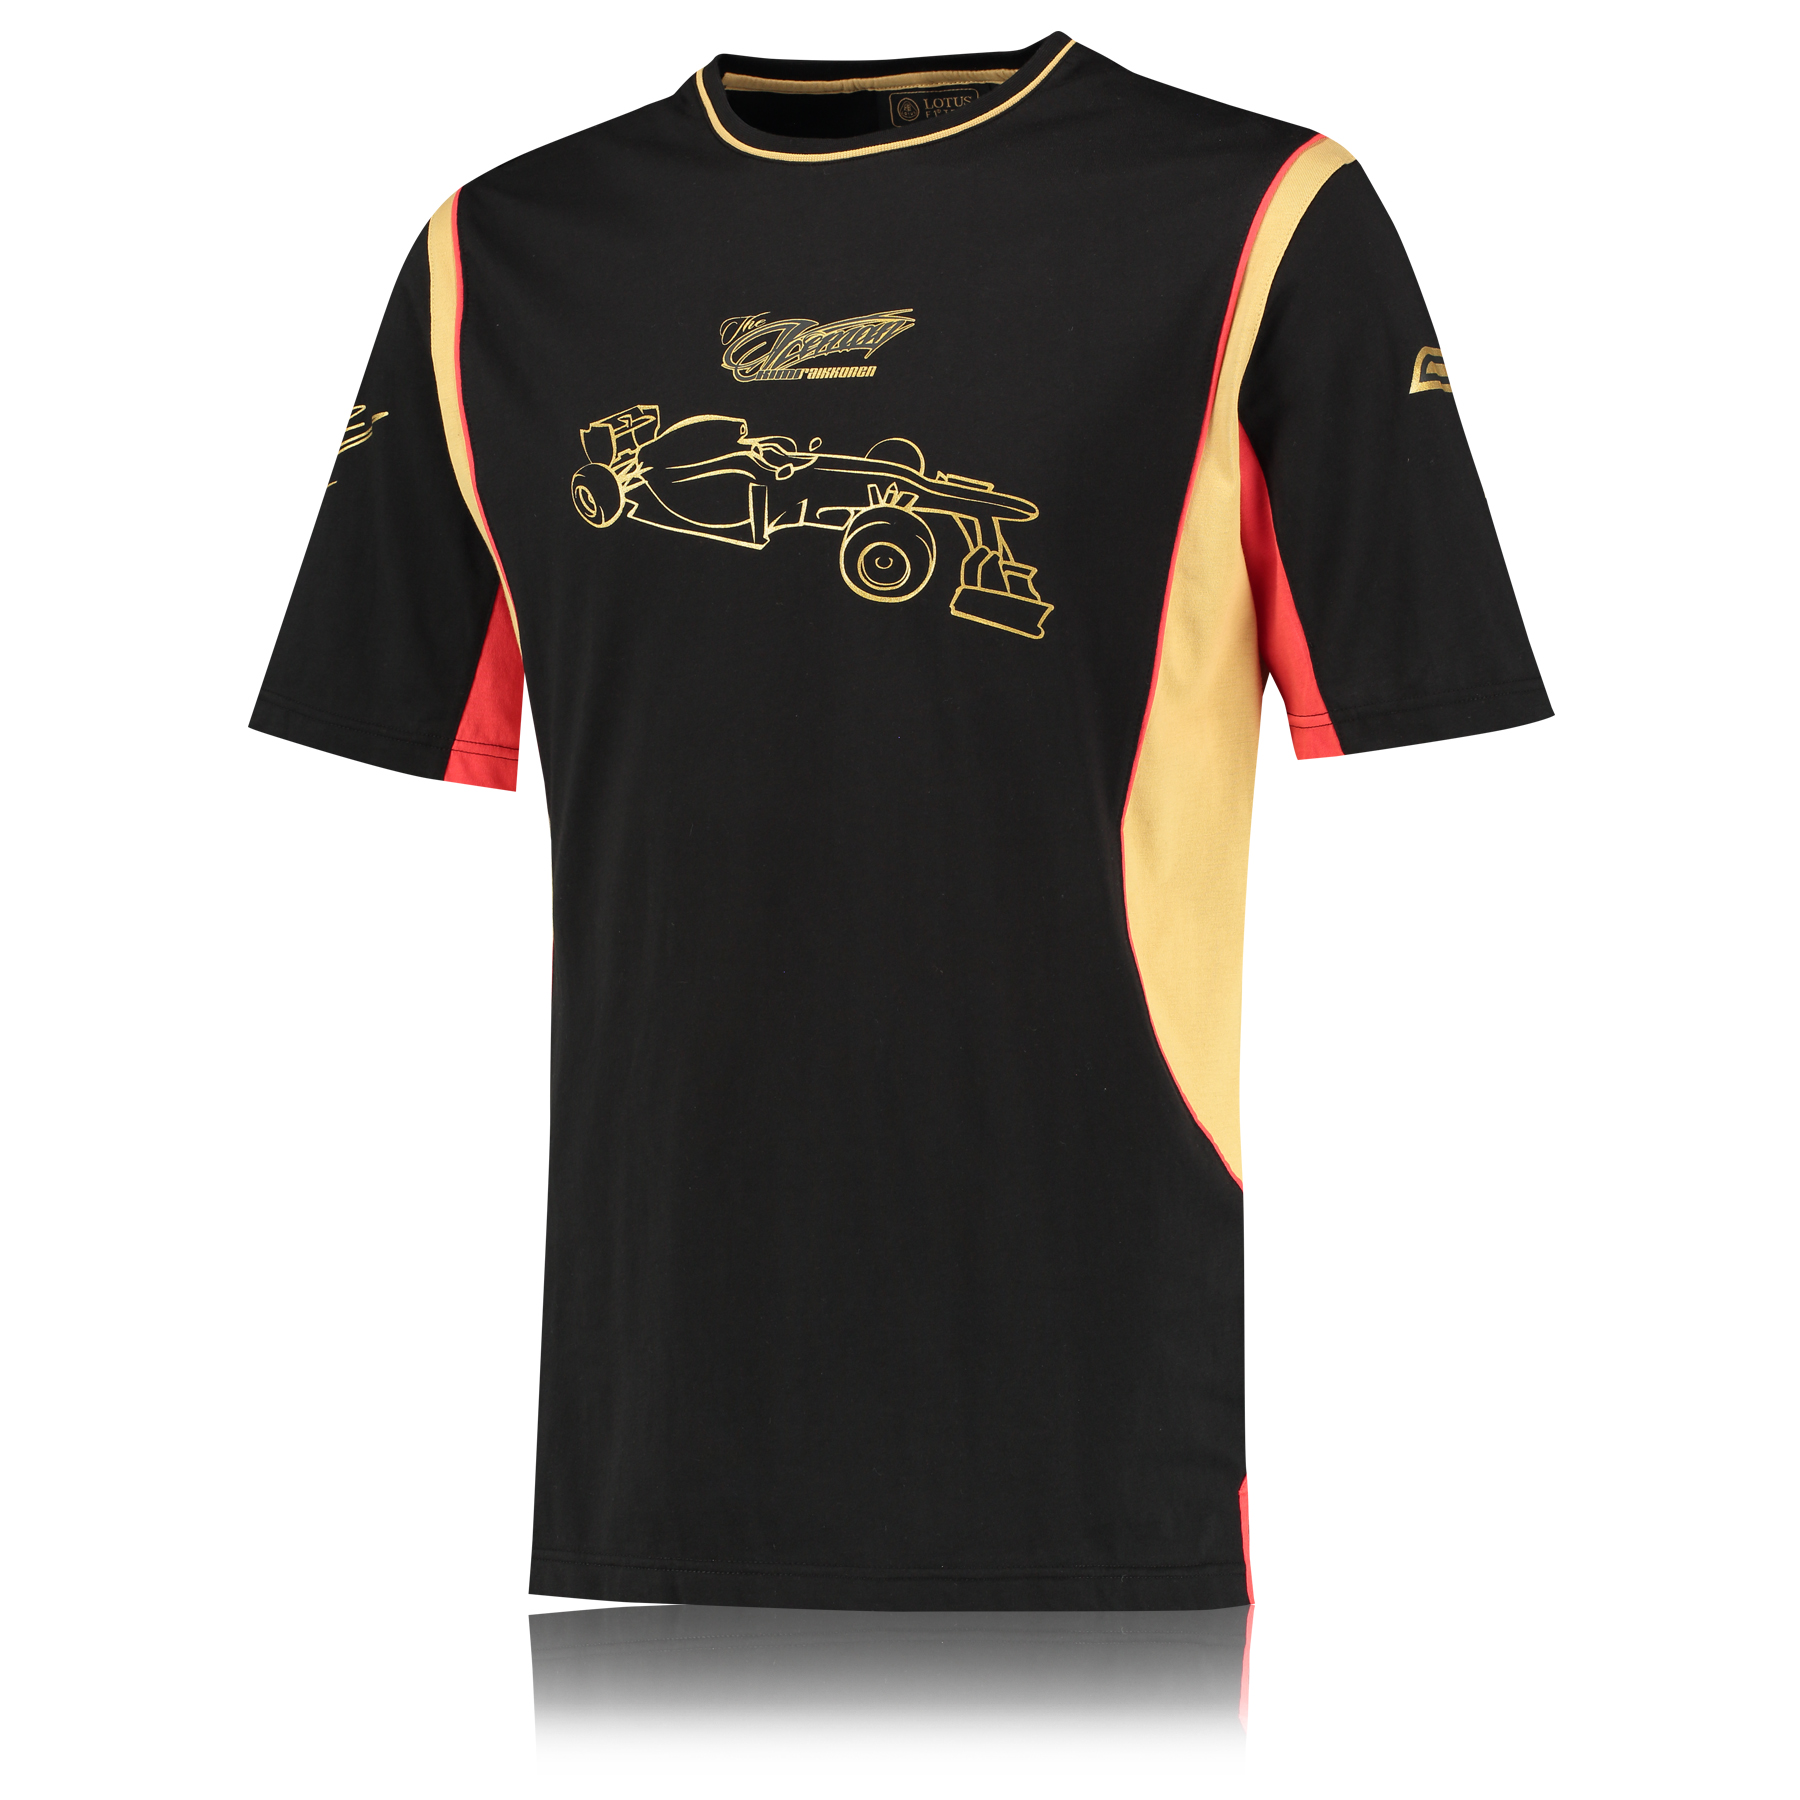 Lotus F1 Team 2013 F1 Mens Lifestyle Kimi T-Shirt